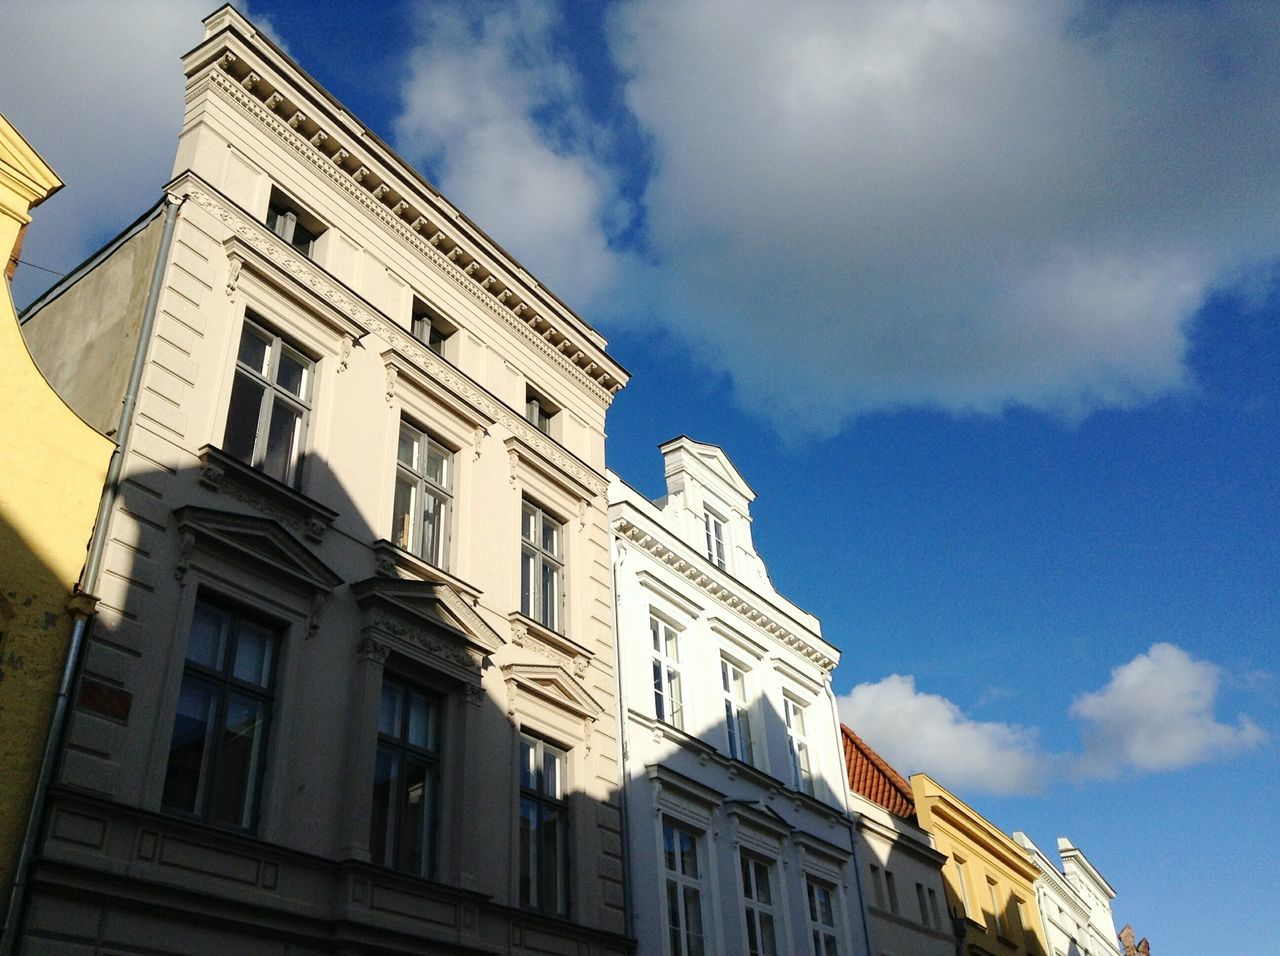 architecture, low angle view, building exterior, sky, built structure, cloud - sky, window, day, no people, outdoors, city